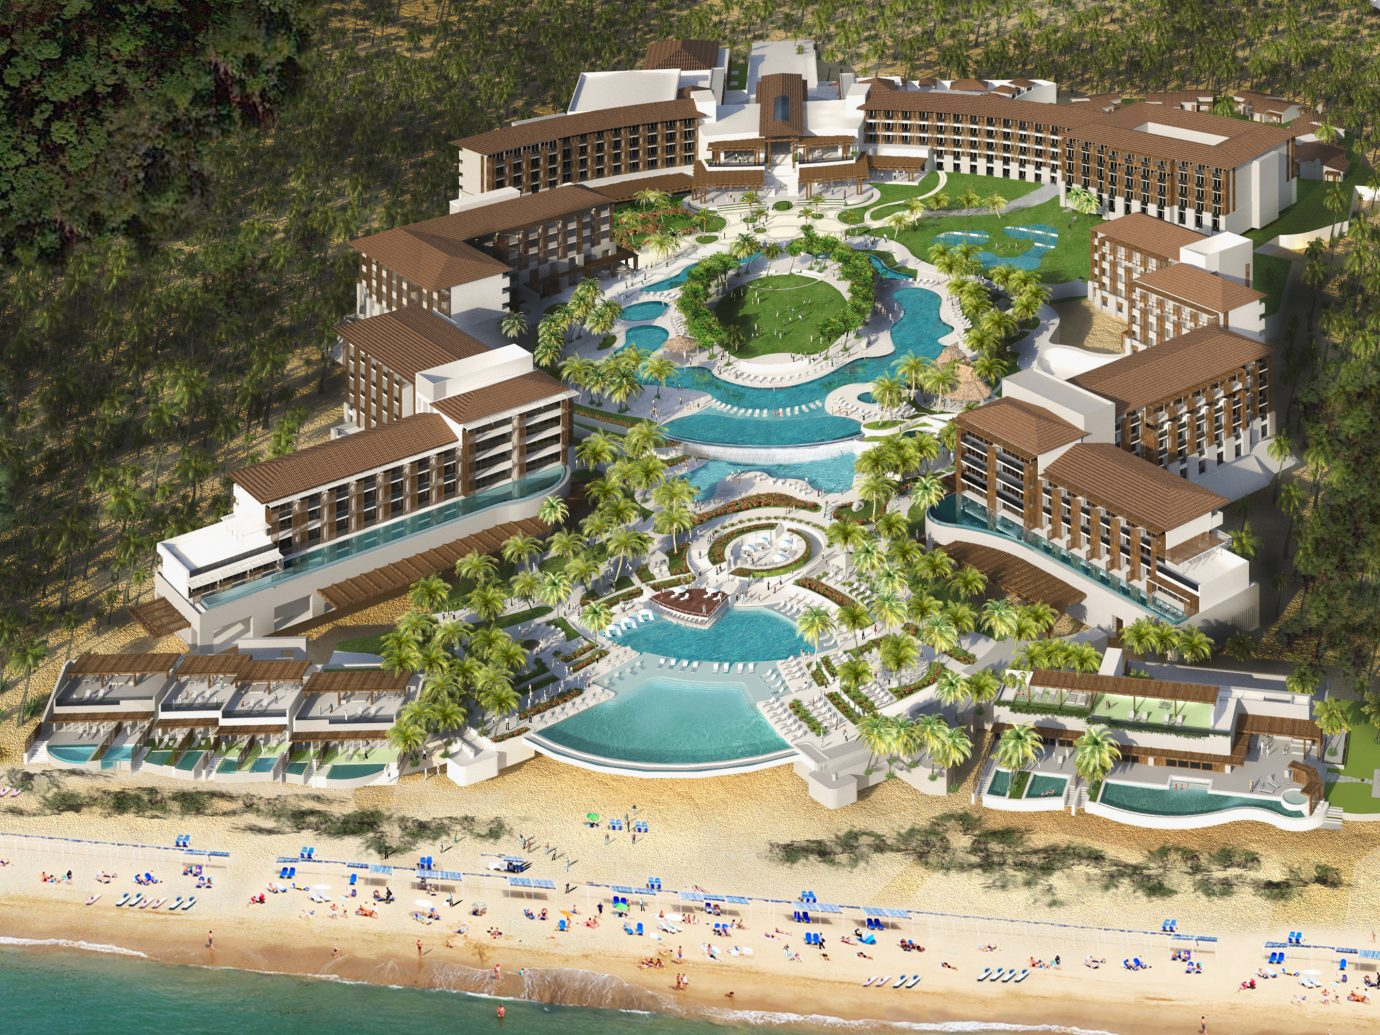 All-Inclusive Resorts Family Travel Hotels tree Resort bird's eye view resort town leisure tourism estate recreation decorated